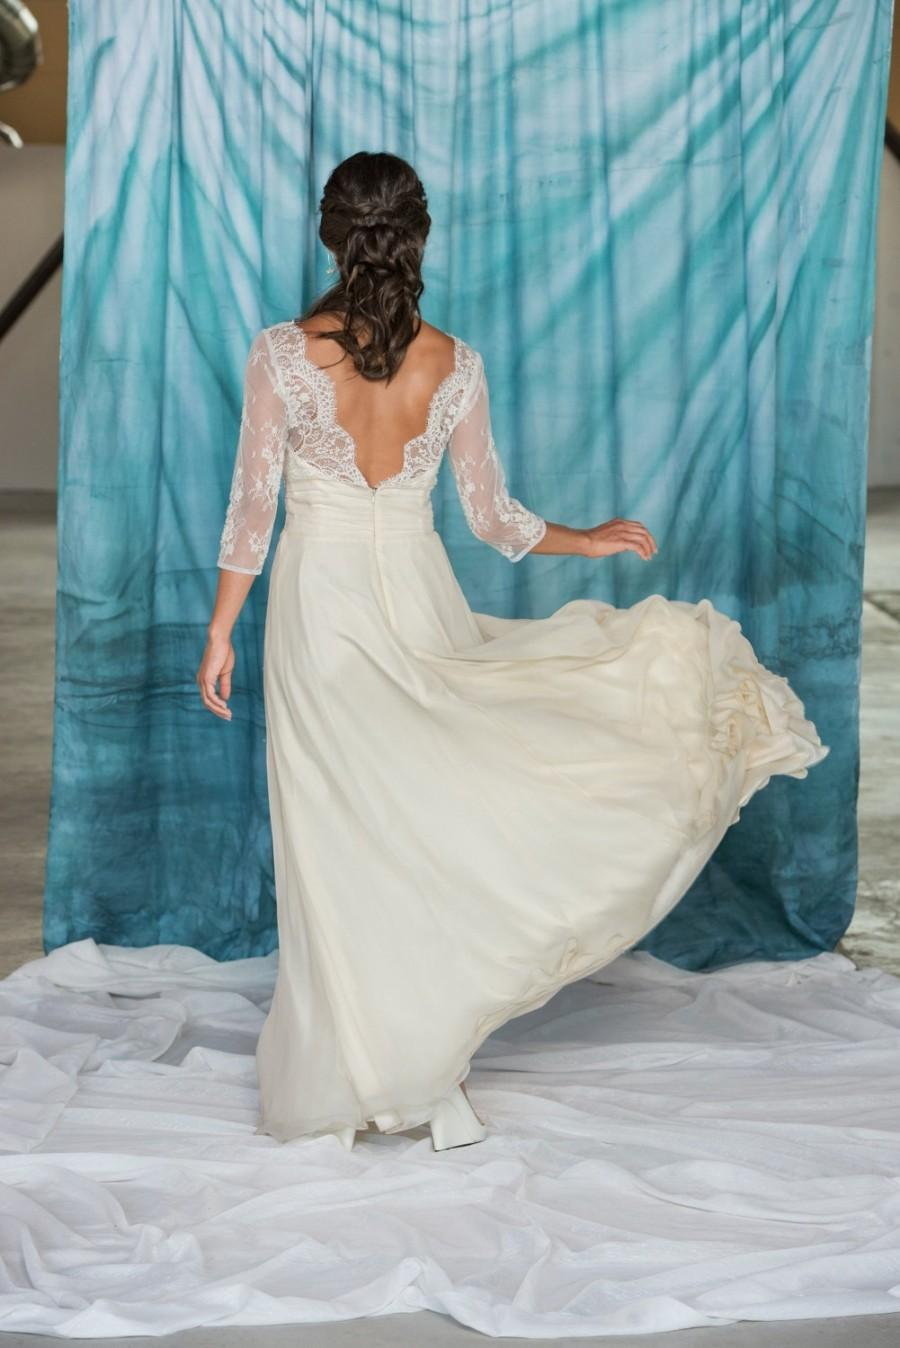 Wedding - Chelsea - Lace Wedding Dress Silk, lace and chiffon wedding dress, Sweetheart Wedding Dress,Illusion neckline, Slit skirt boho bridal gown